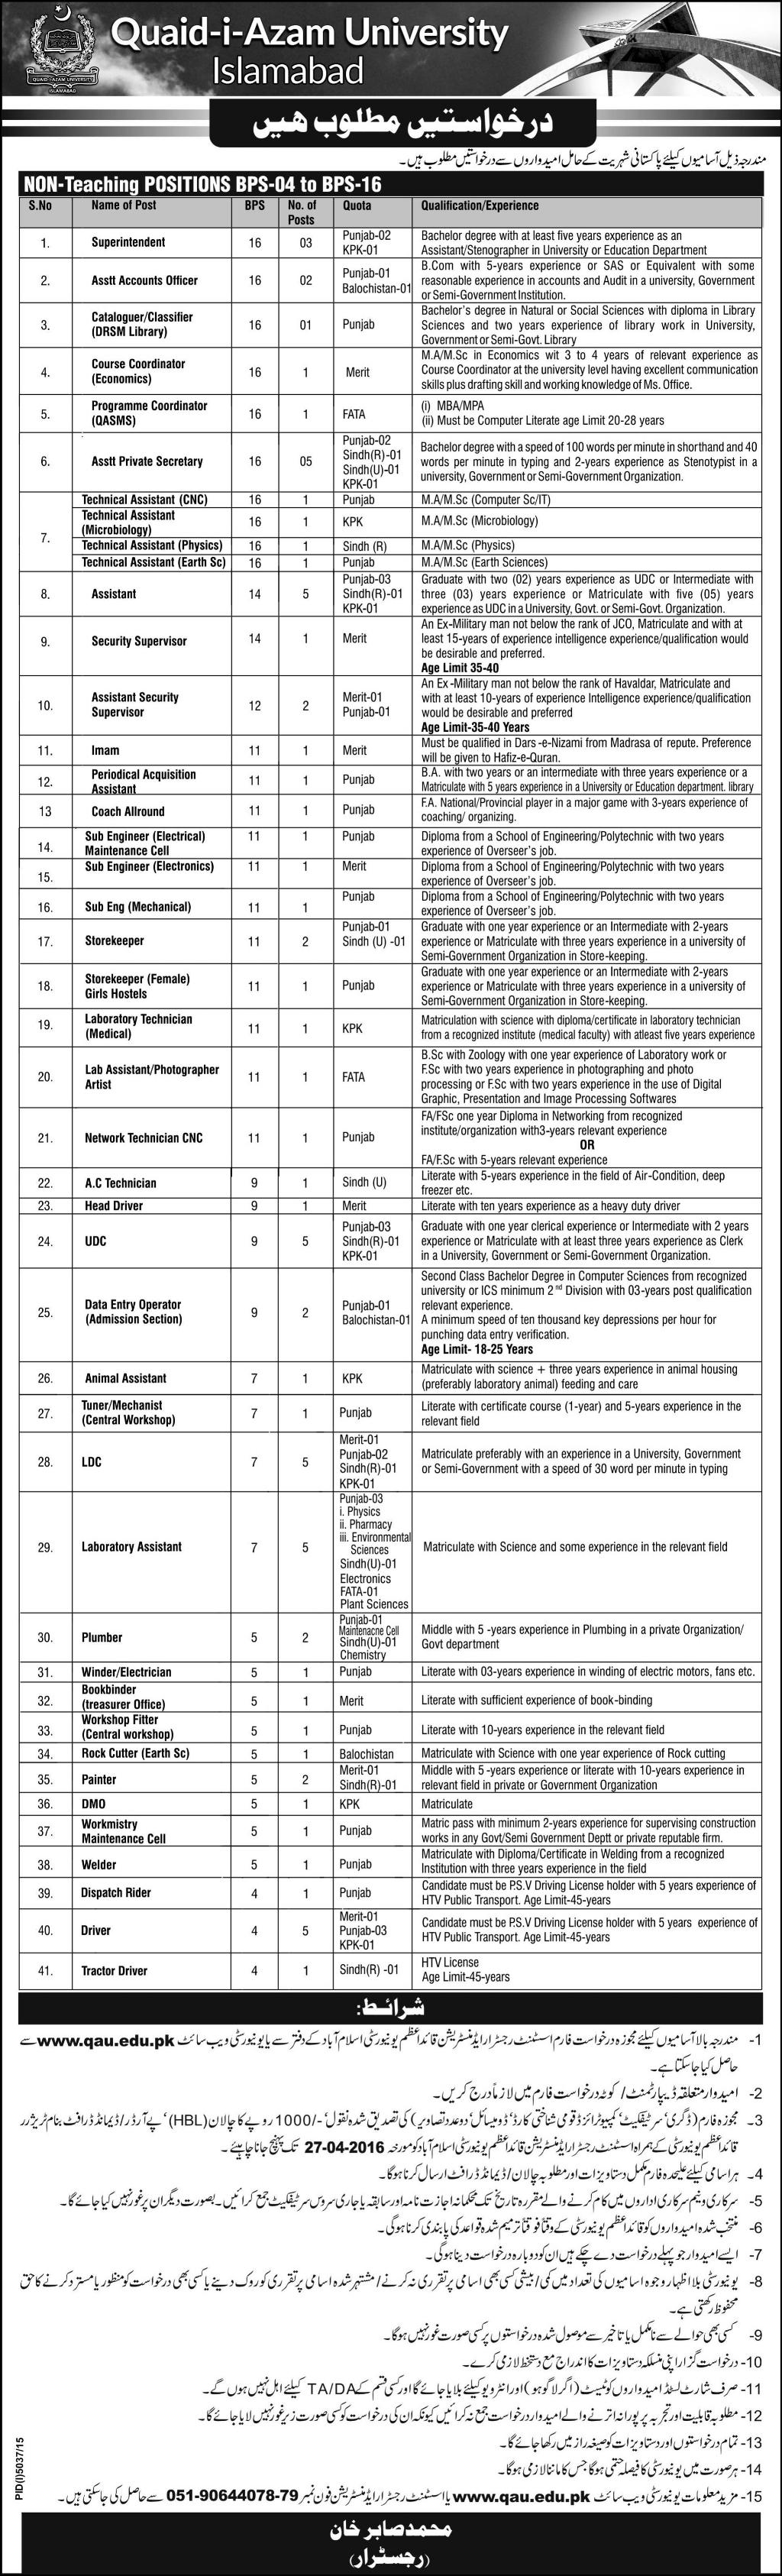 QUA Jobs 2016 Quaid i Azam University Islamabad